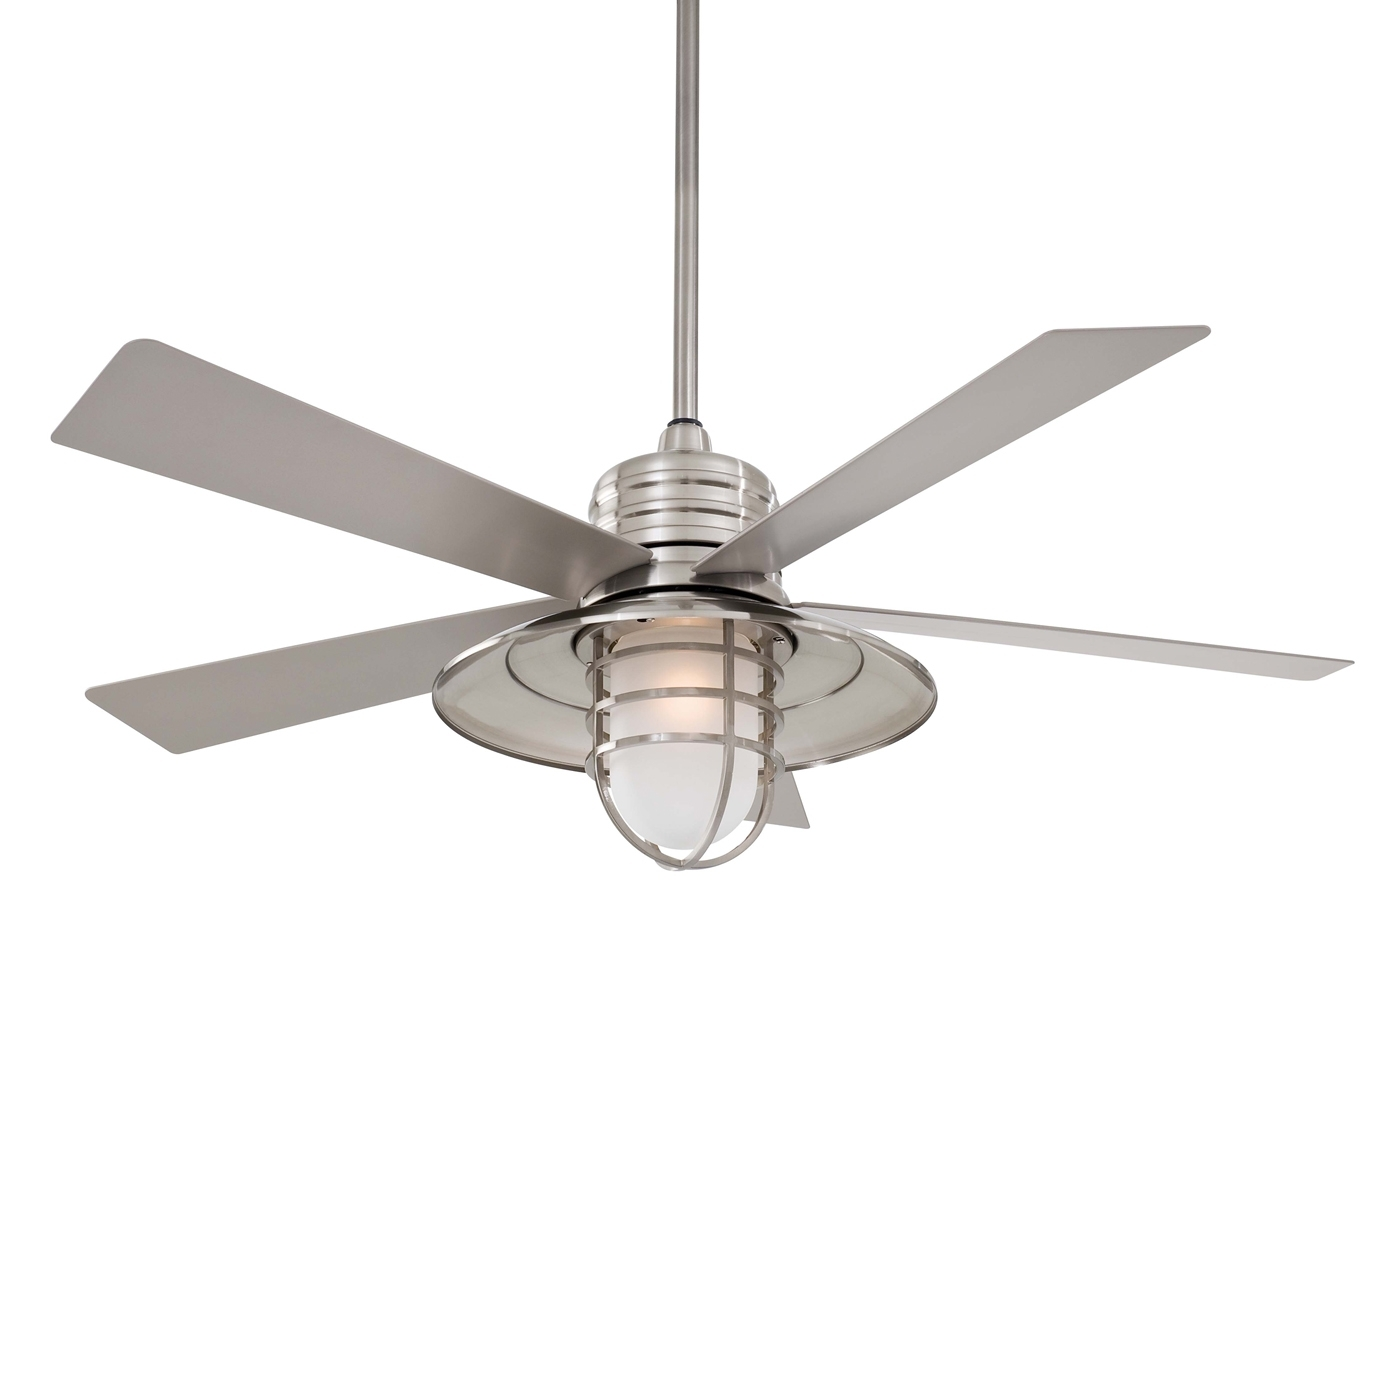 Most Recently Released Outdoor Ceiling Fans Wet Rated With Light – Outdoor Lighting Ideas Regarding Outdoor Ceiling Fans With Lights Damp Rated (View 6 of 20)